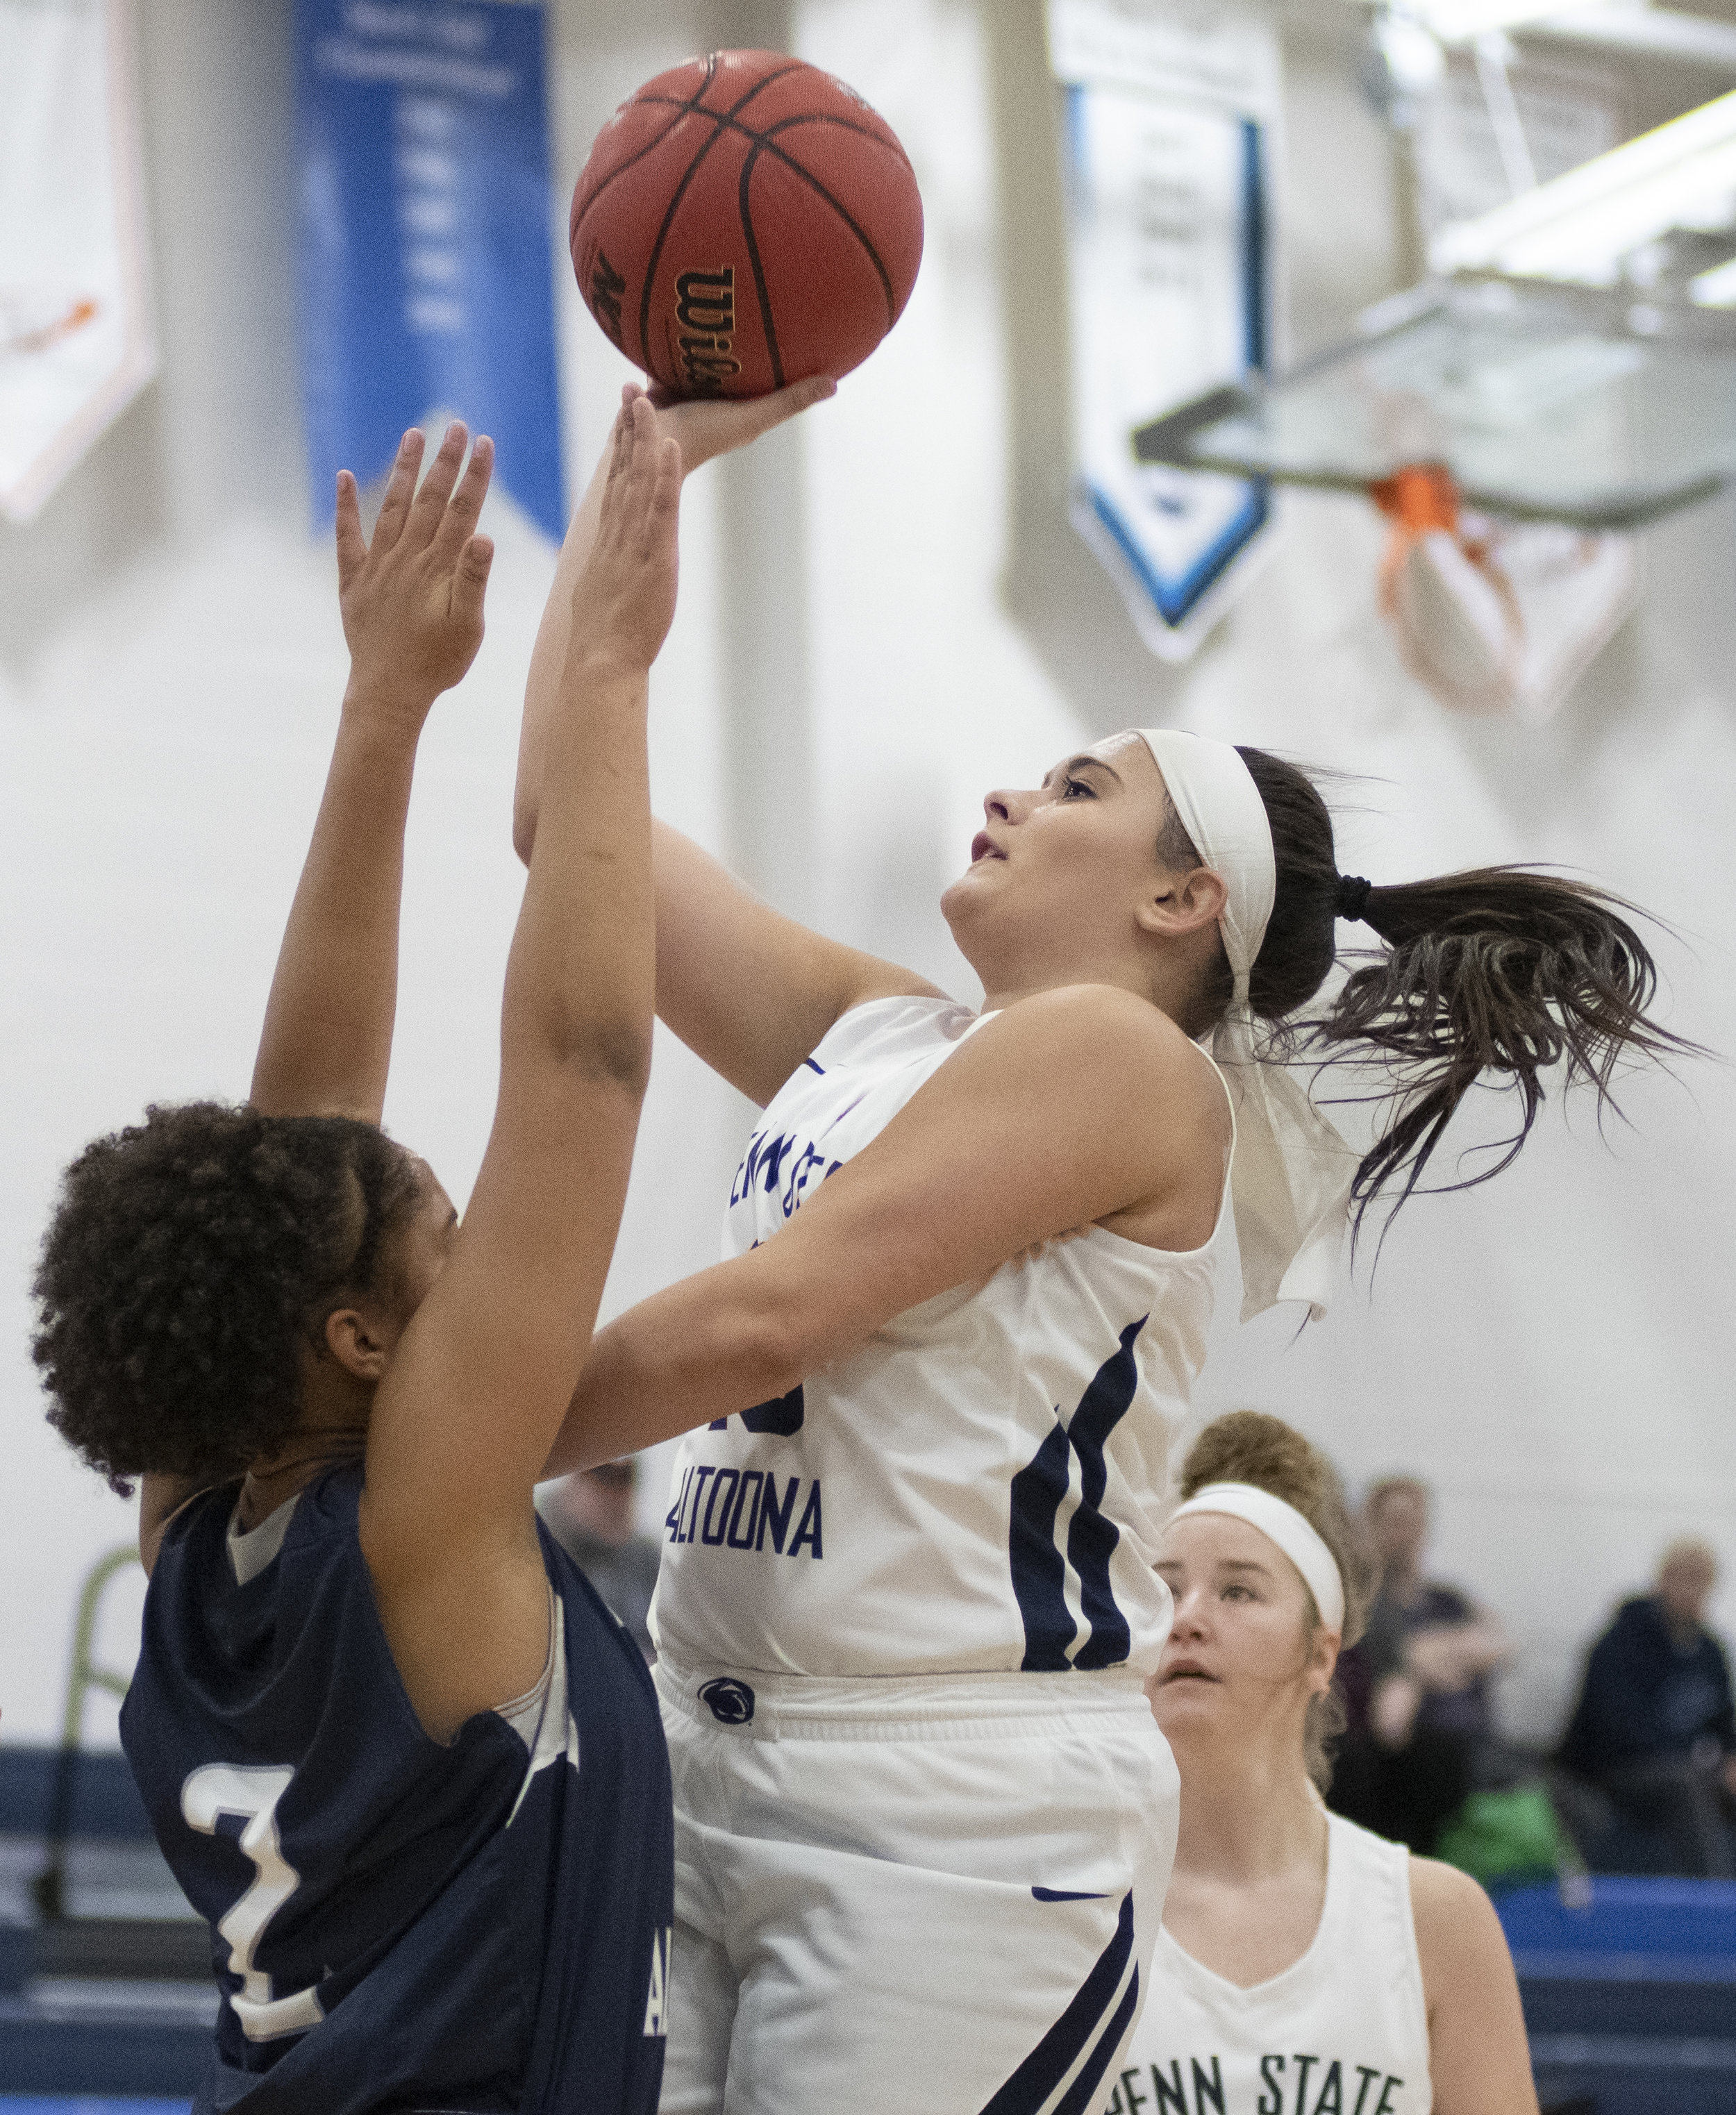 Finnley Christine (13) shoots the ball during their game against Mount Aloysius College at Adler Arena on Wednesday, Nov. 28, 2018. | Photo by: Noah Riffe